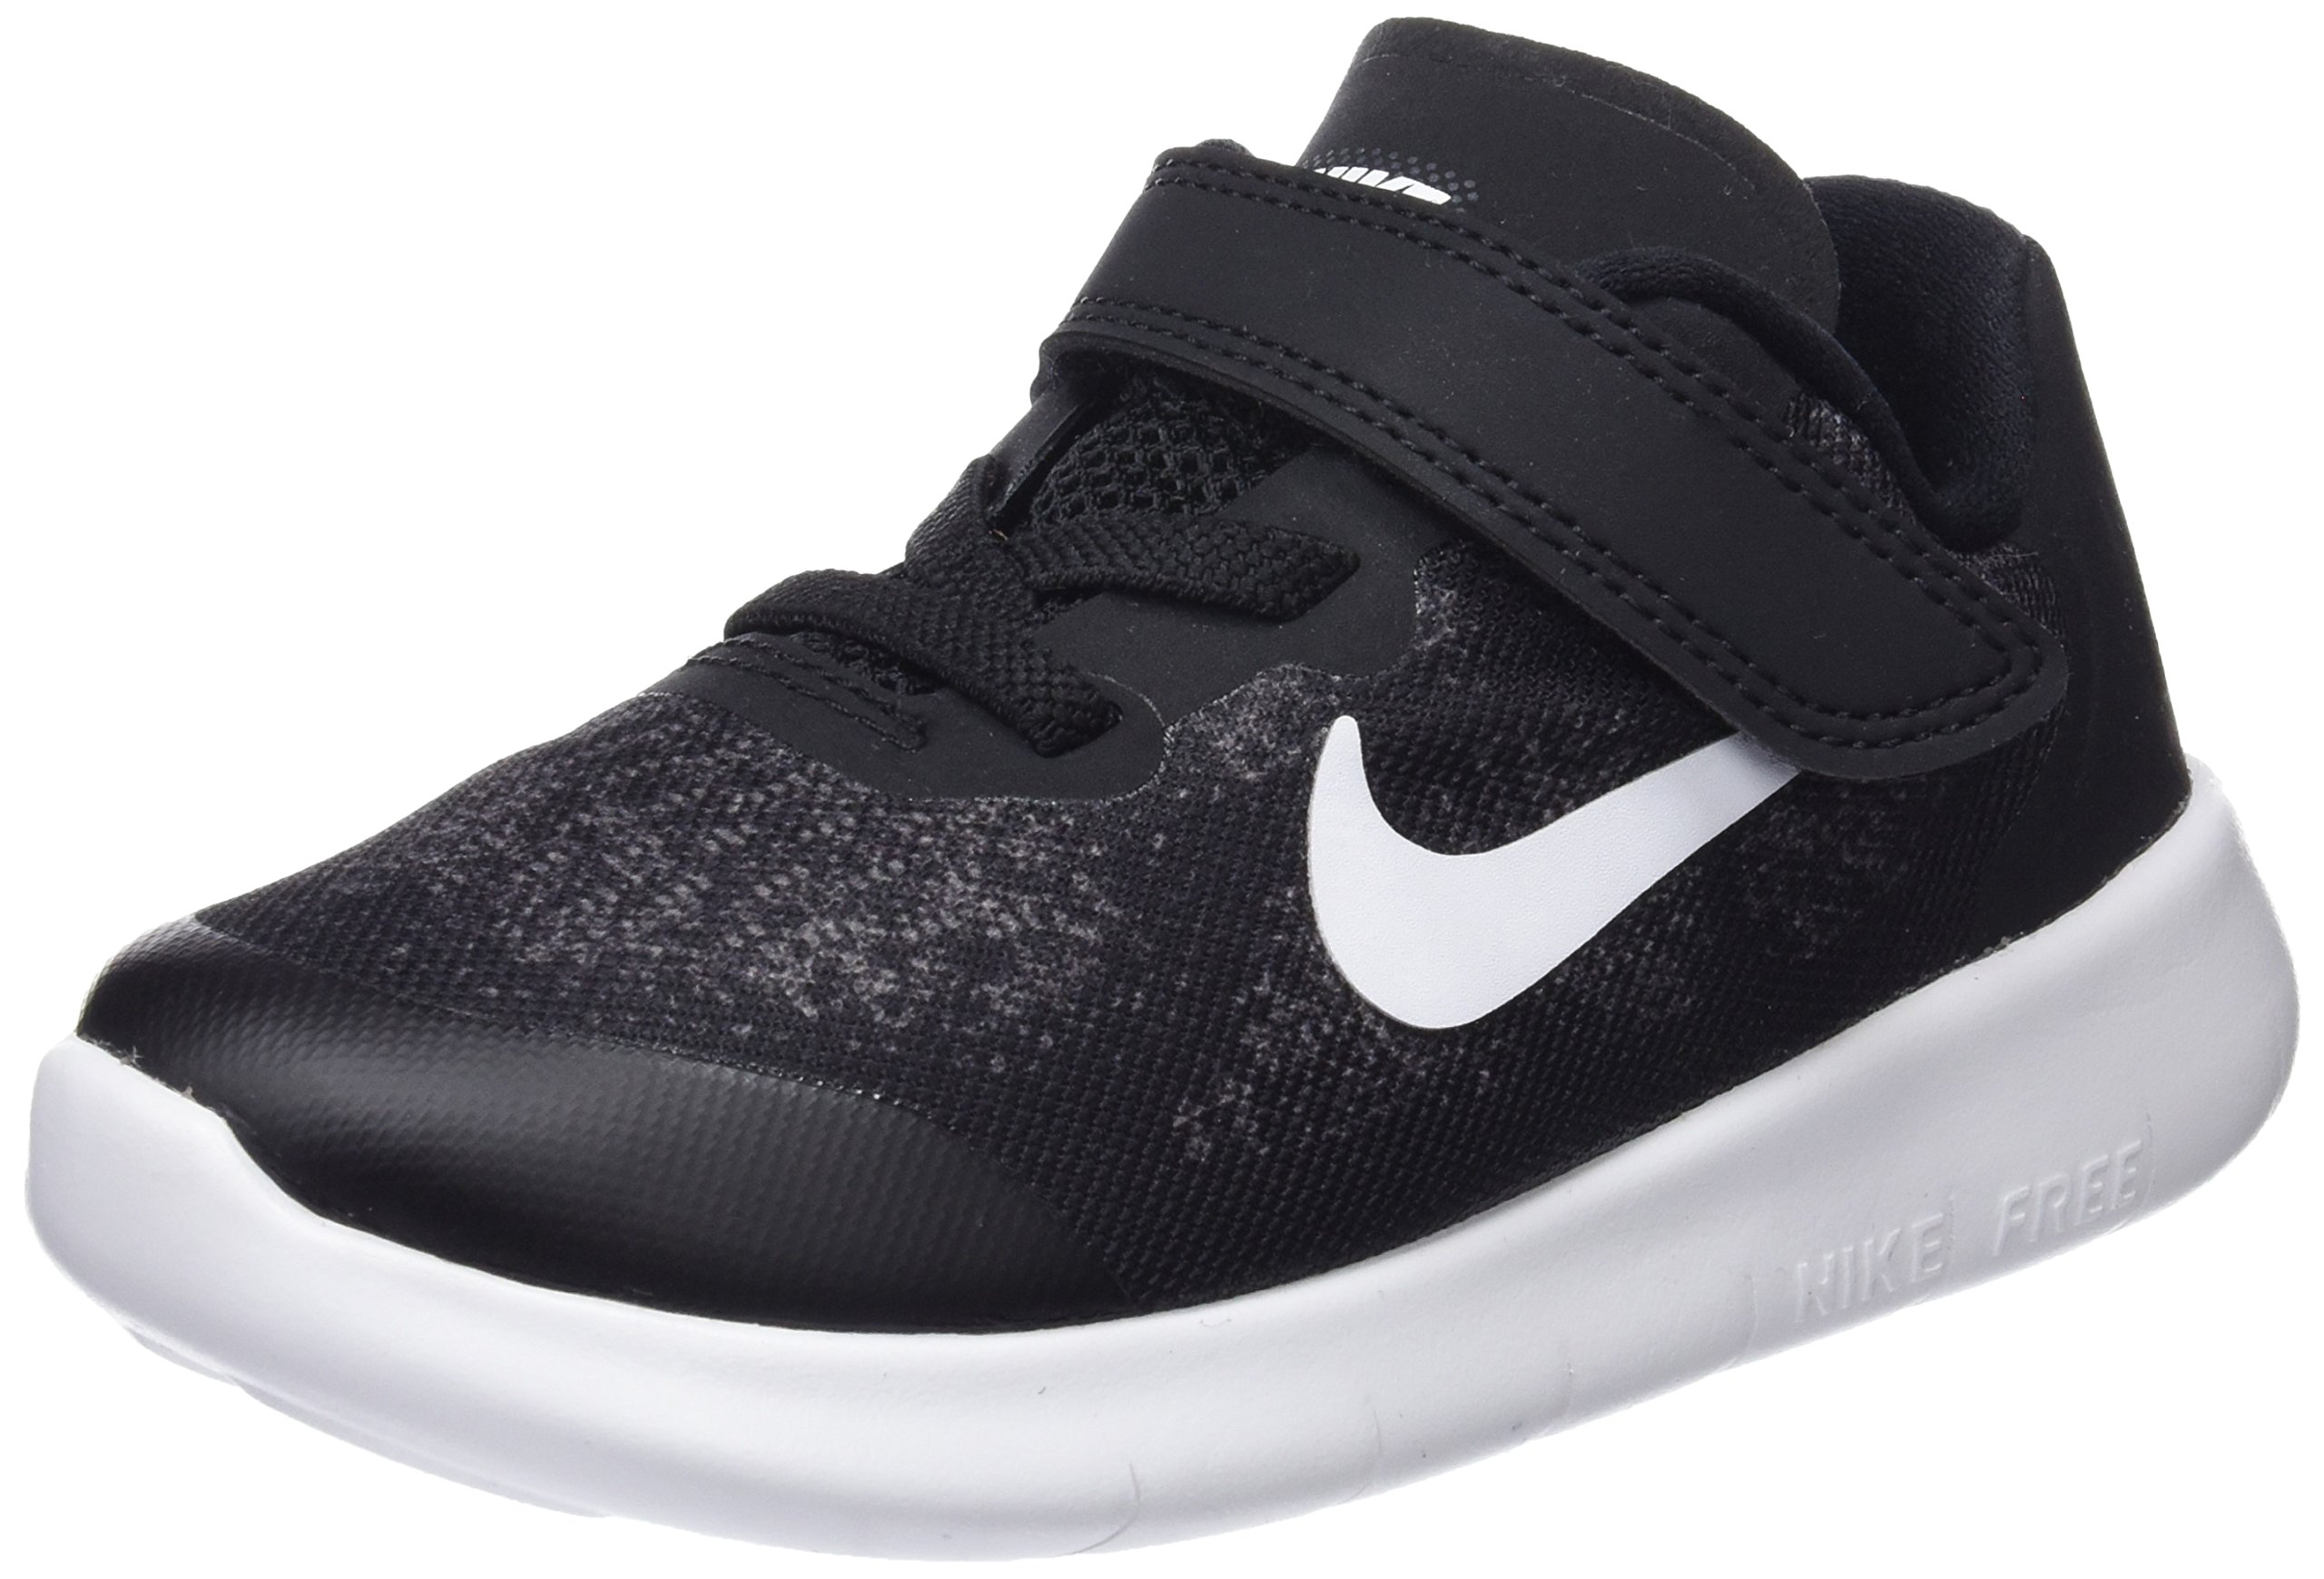 Nike Boys Free RN 2017 (TDV) Toddler Shoe (6 M US Toddler) Black